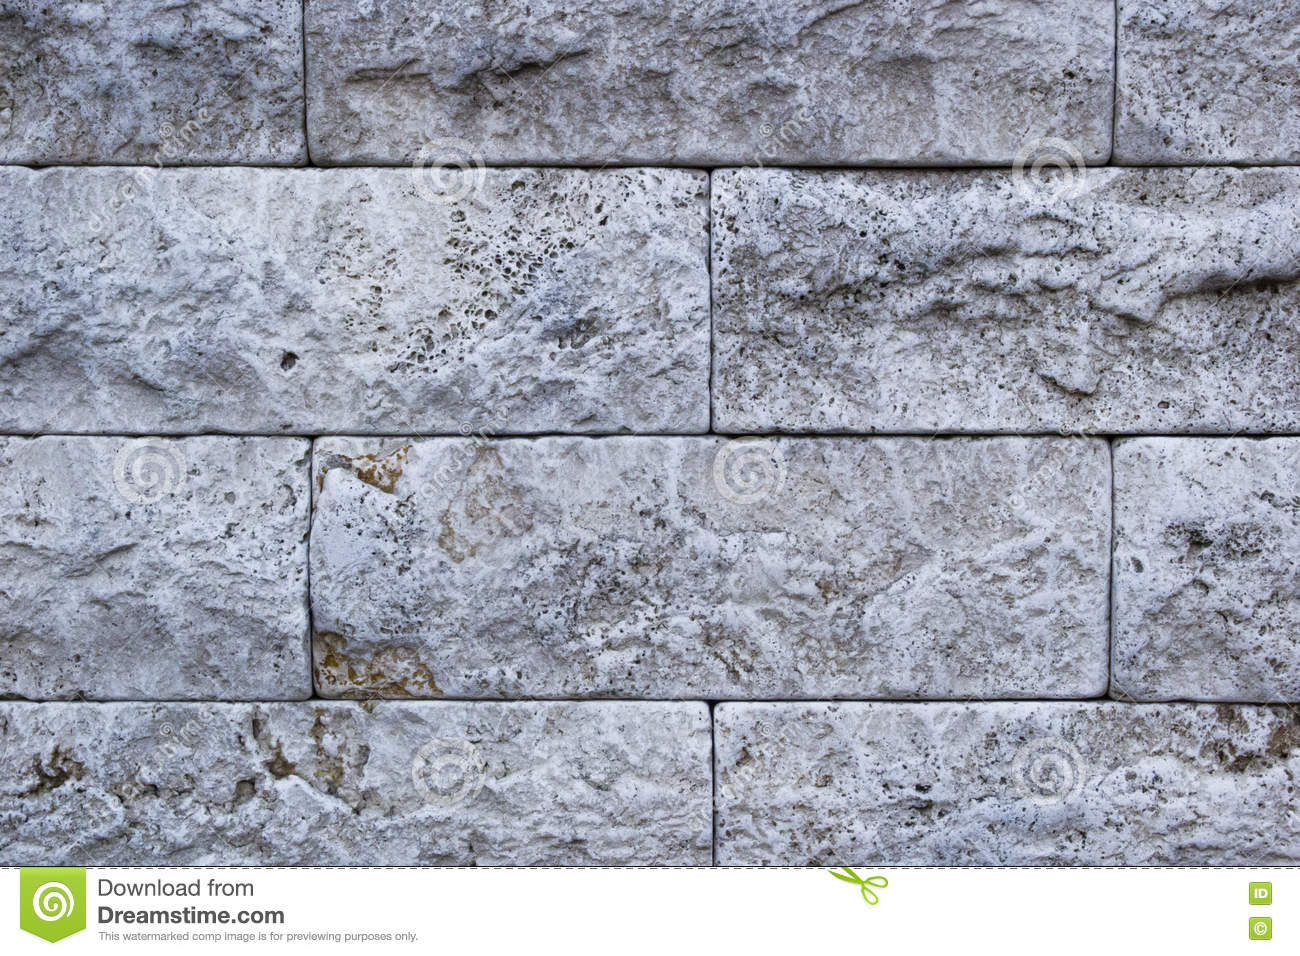 Nature Stone Texture Background Tiles Stock Image - Image of ...